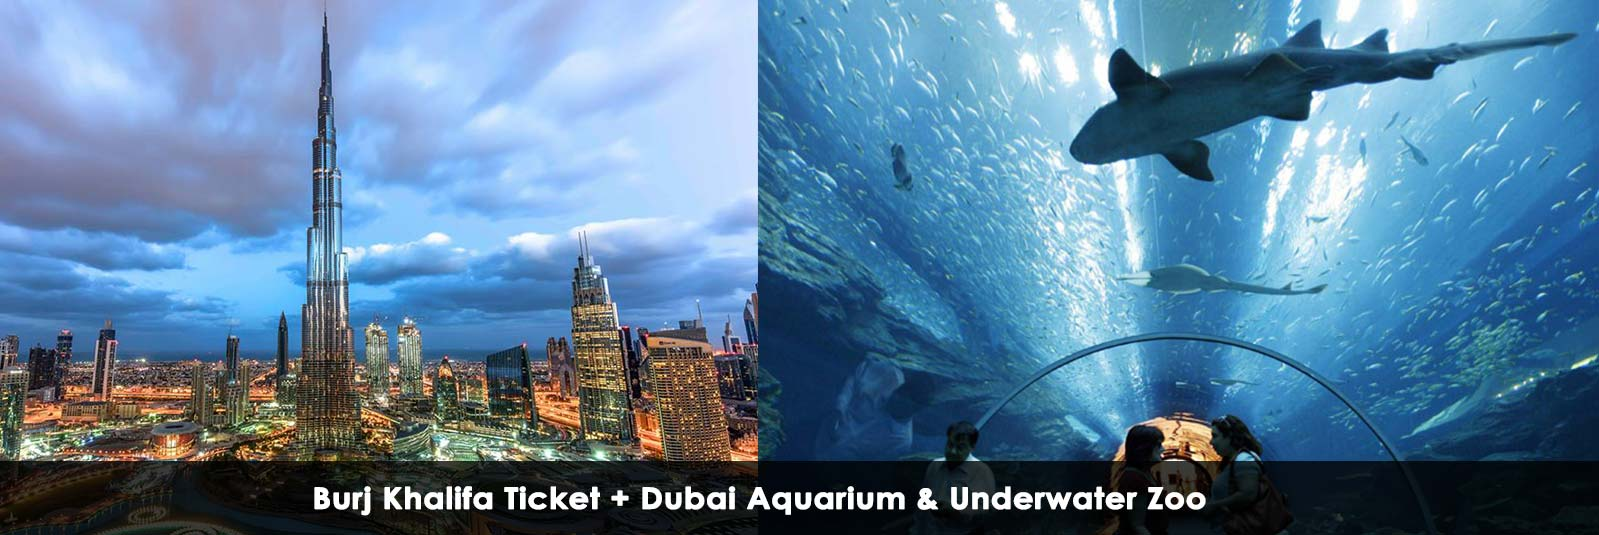 Burj-Khalifa-Ticket-+-Dubai-Aquarium-&-Underwater-Zoo